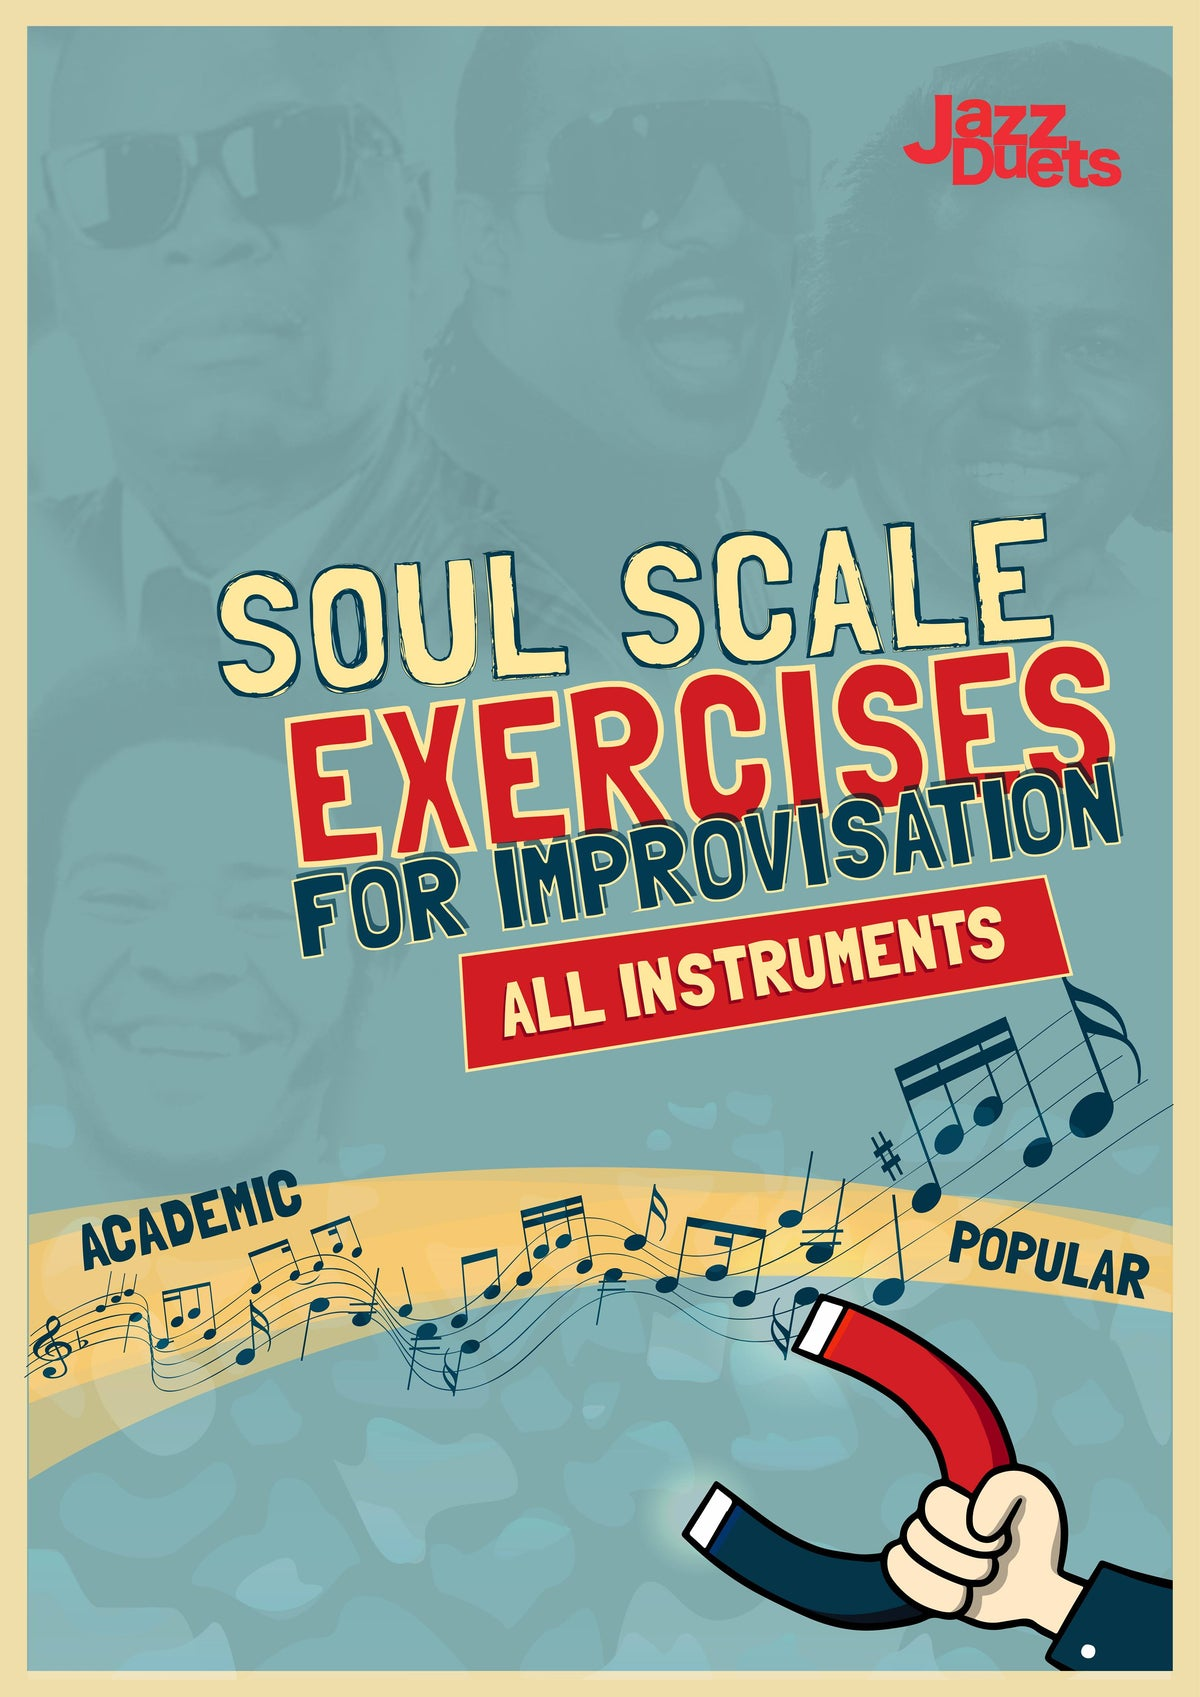 Soul scale exercises for Improvisation -All Instruments